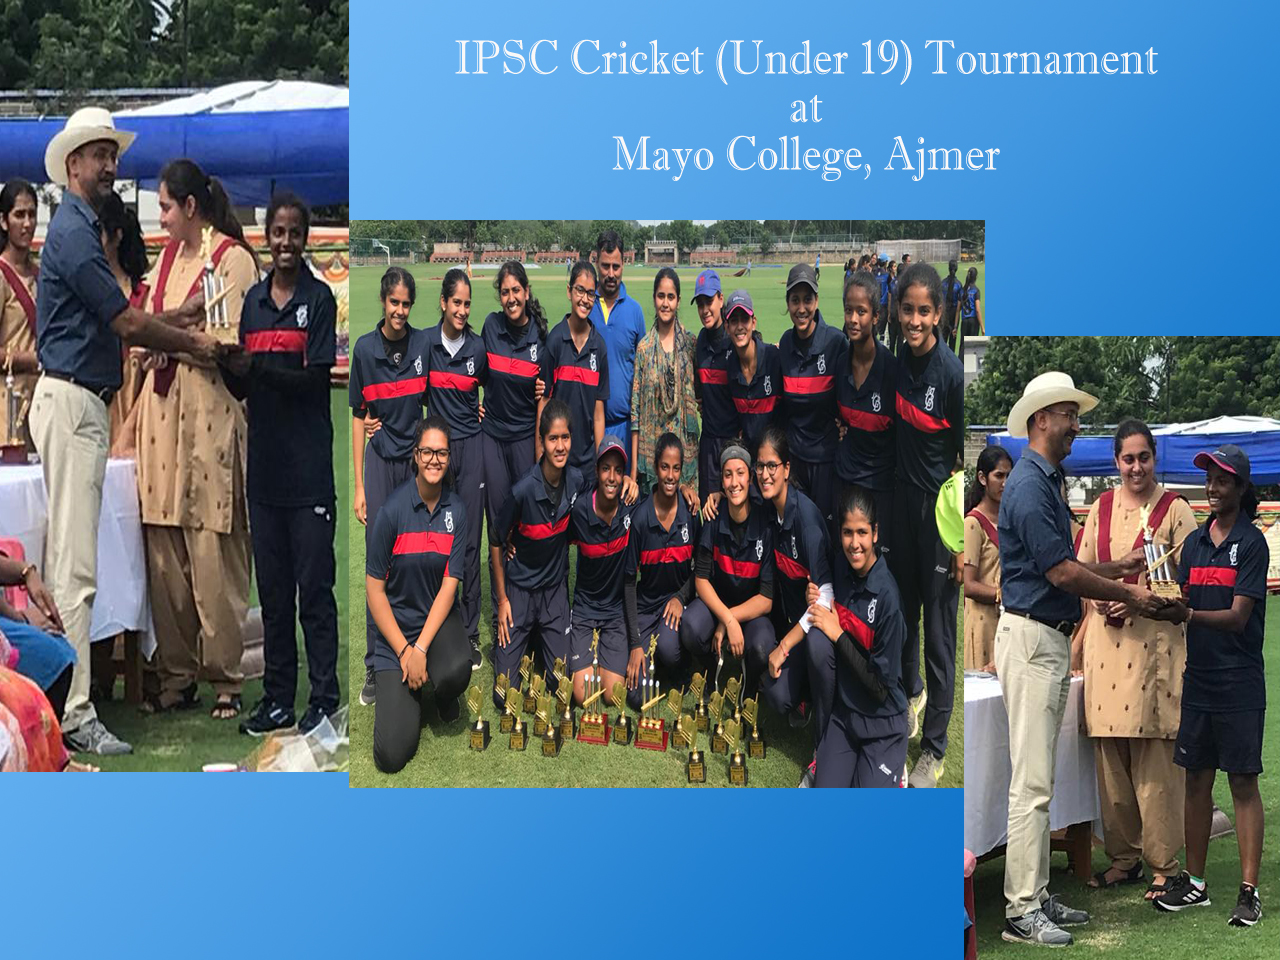 MGD cricket team bagged 2nd runners up position in IPSC Cricket (U-19) tournament held at Mayo College, Ajmer.